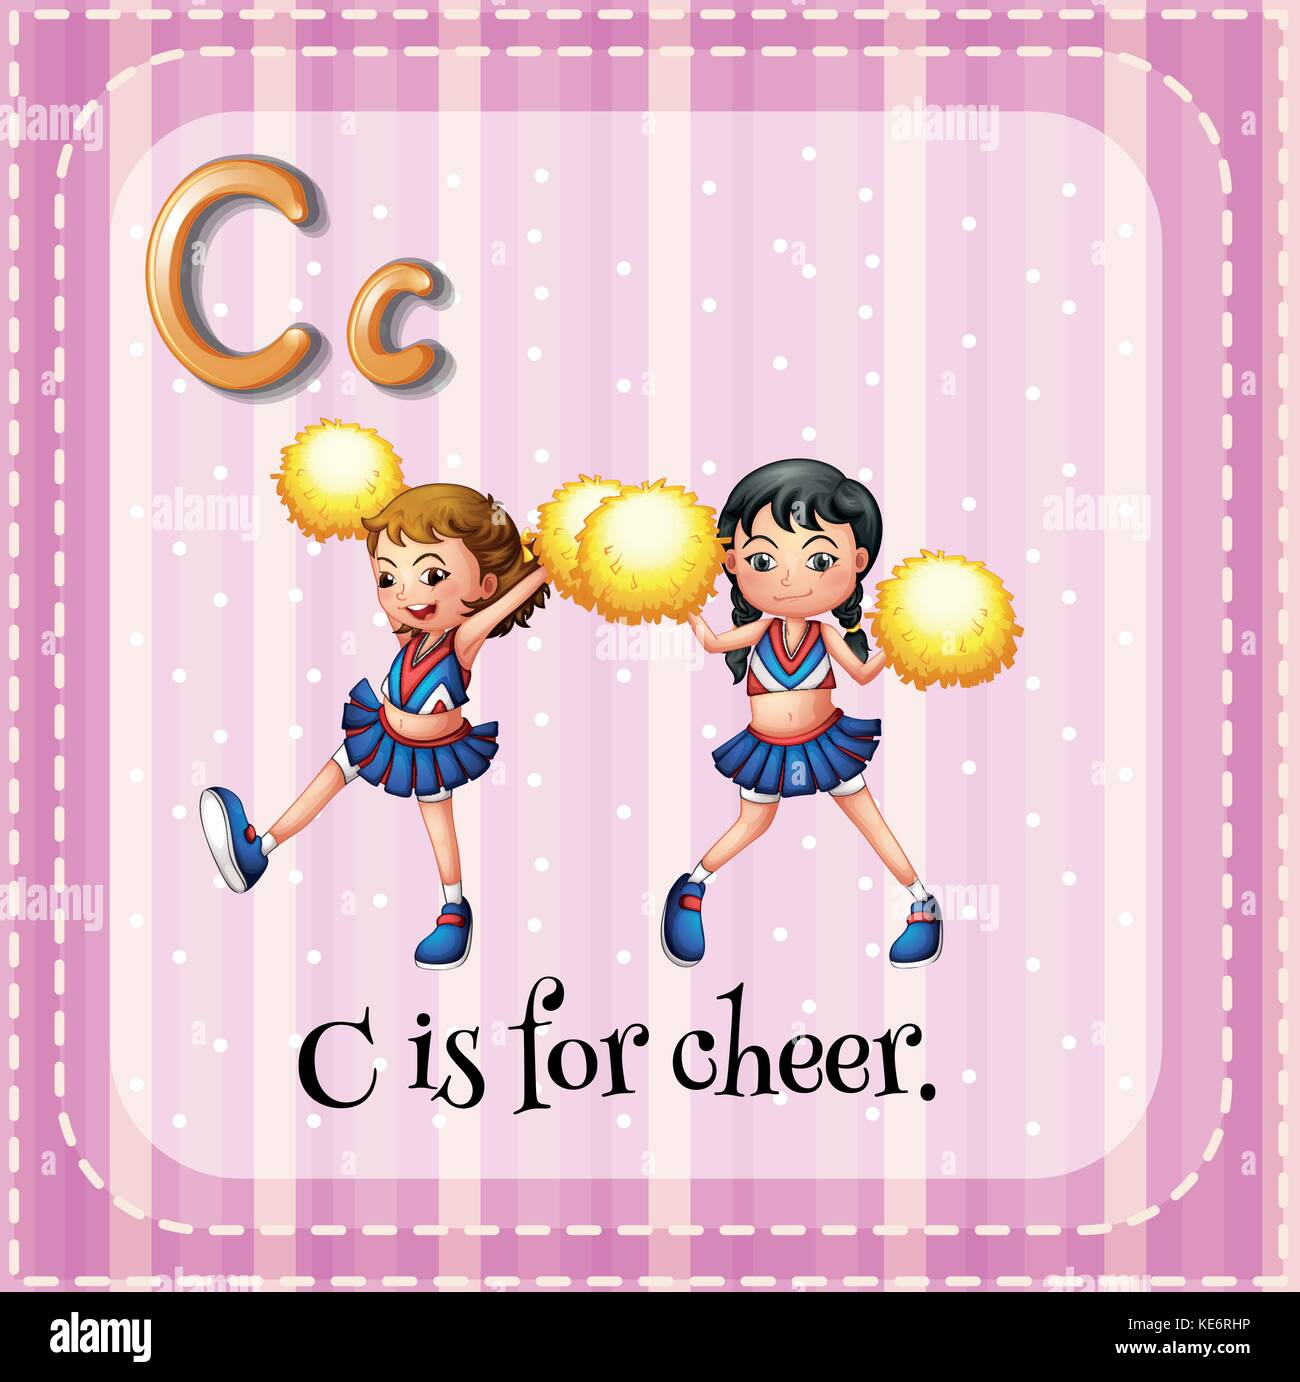 Flashcard letter c is for cheer stock vector art illustration flashcard letter c is for cheer altavistaventures Gallery